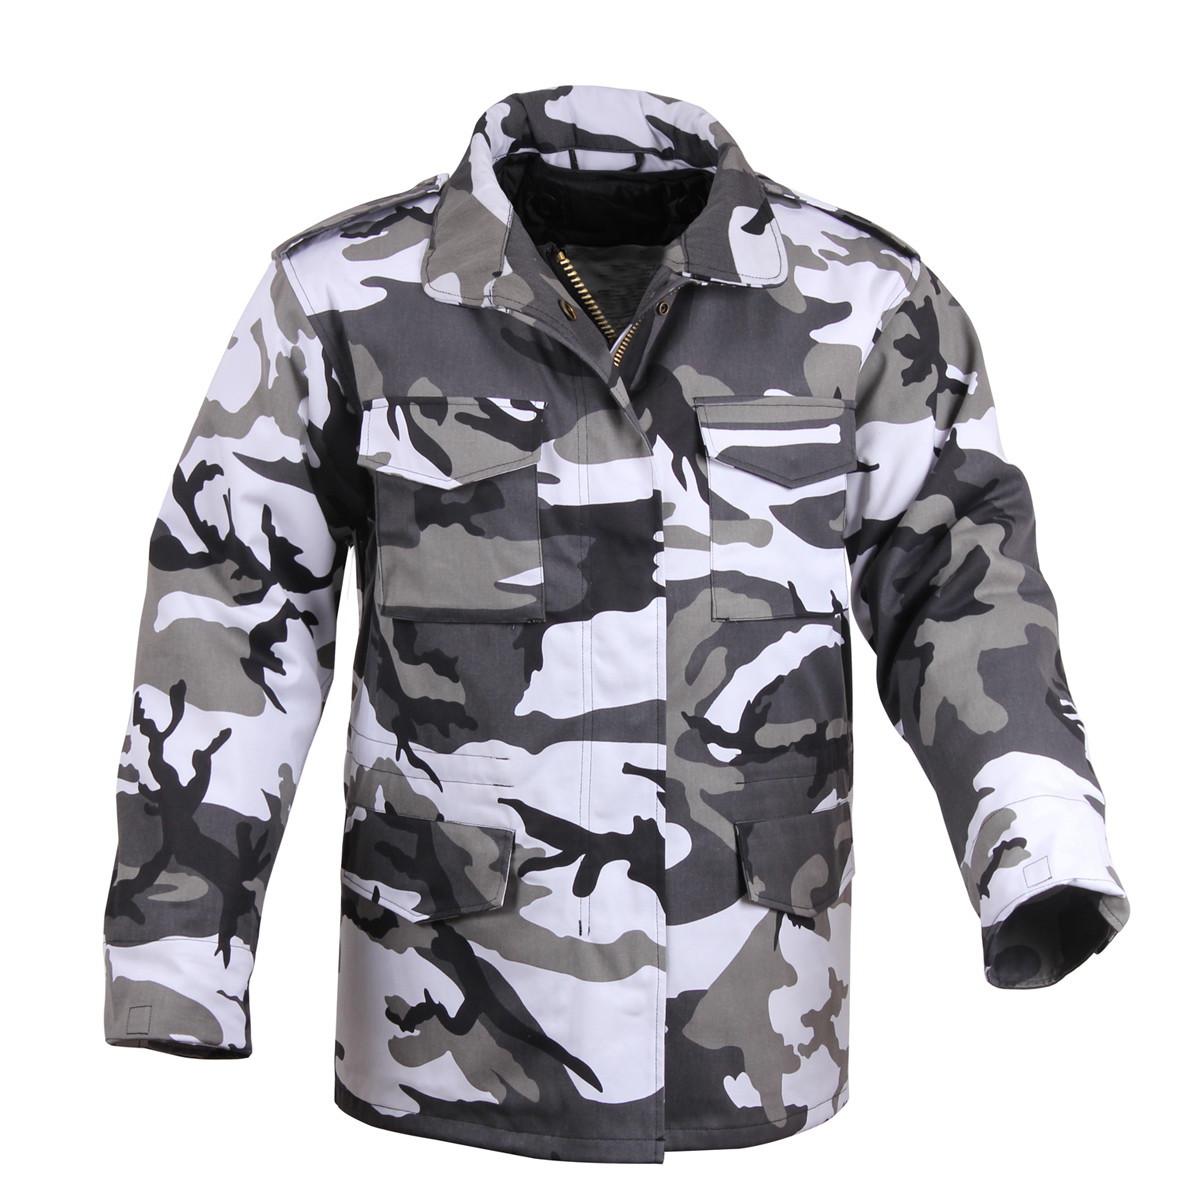 79a395c8ff491 Shop Urban Camo M-65 Field Jackets - Fatigues Army Navy Gear